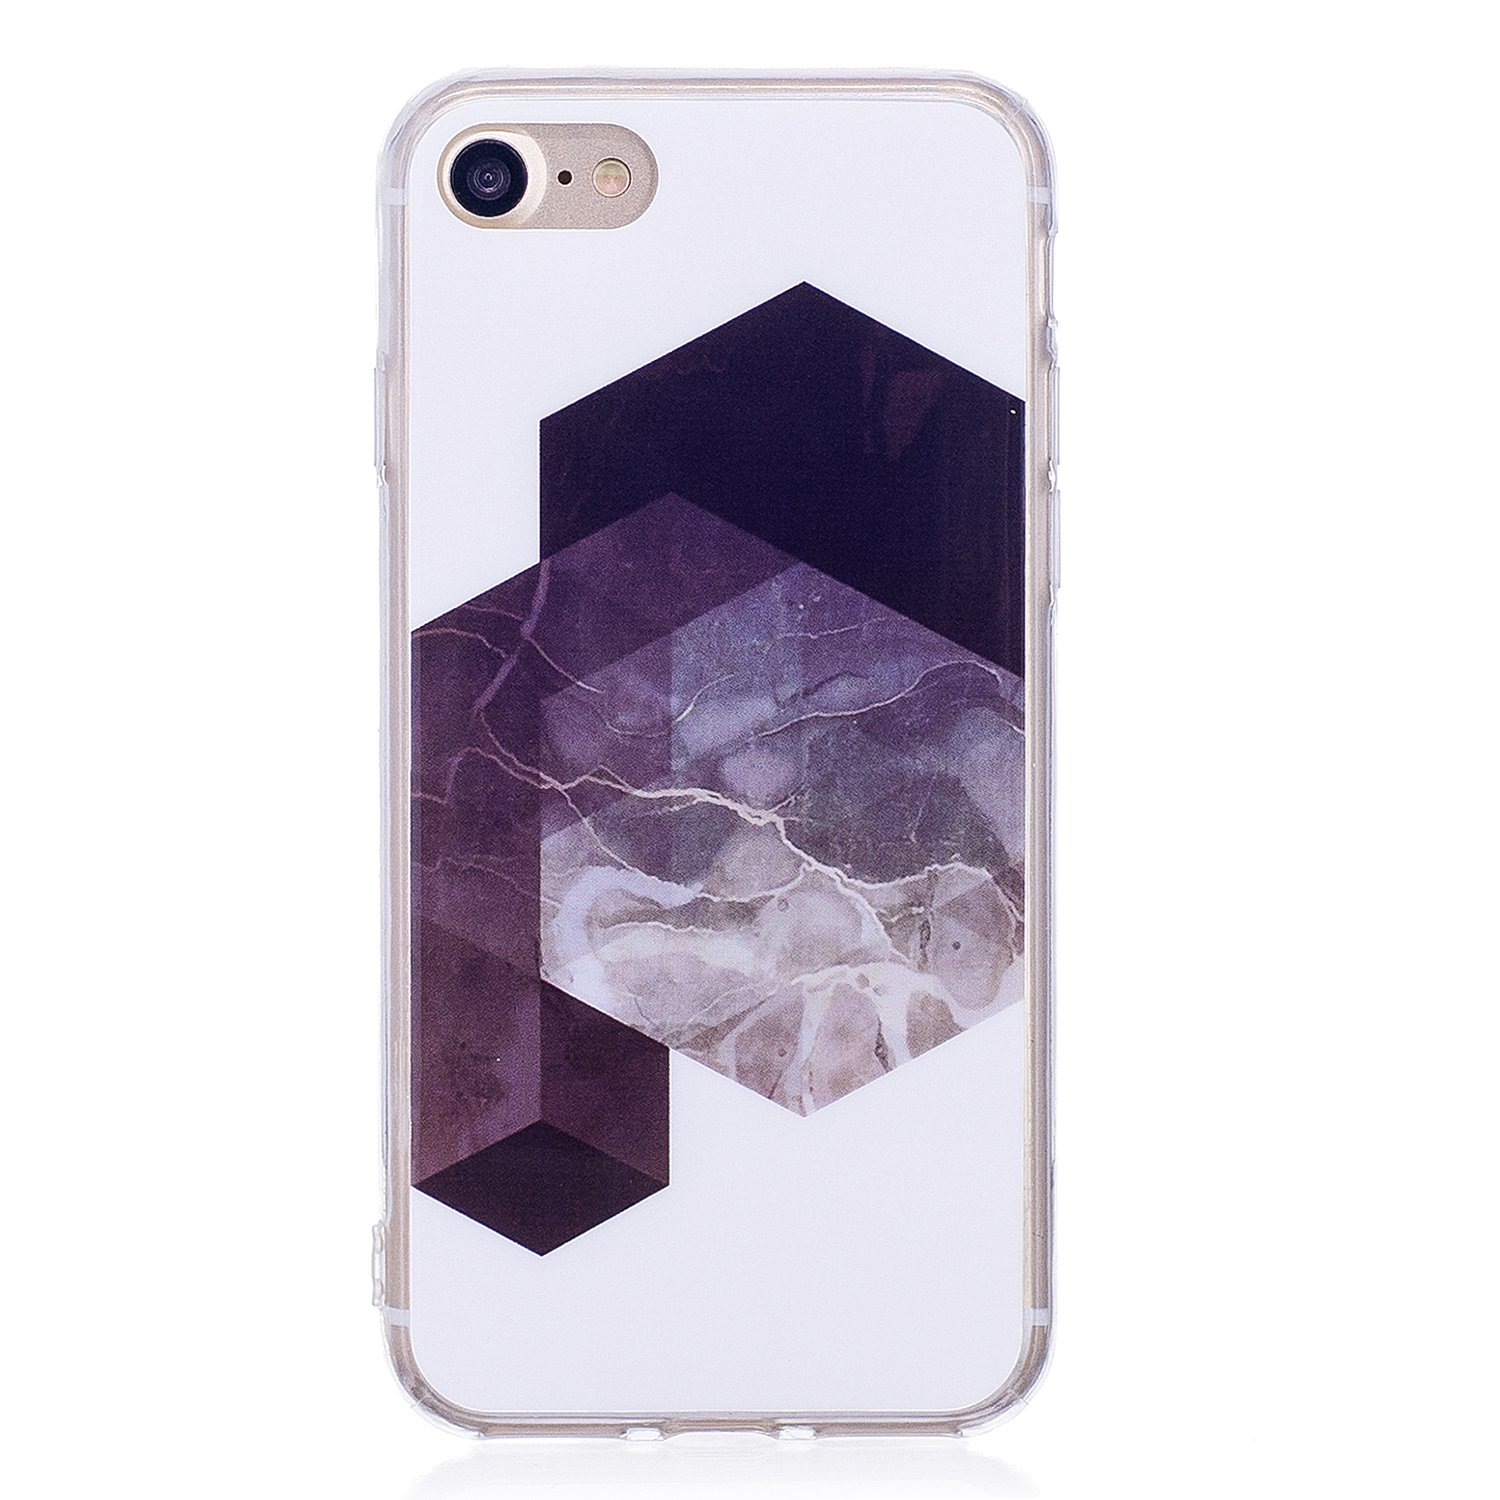 Marble Case for iPhone 7, Shinyzone iPhone 8 Silicone TPU Soft Case, Shockproof Rubber Bumper Skin with [Lovely] Personalised Marble Print Quote Design Pattern